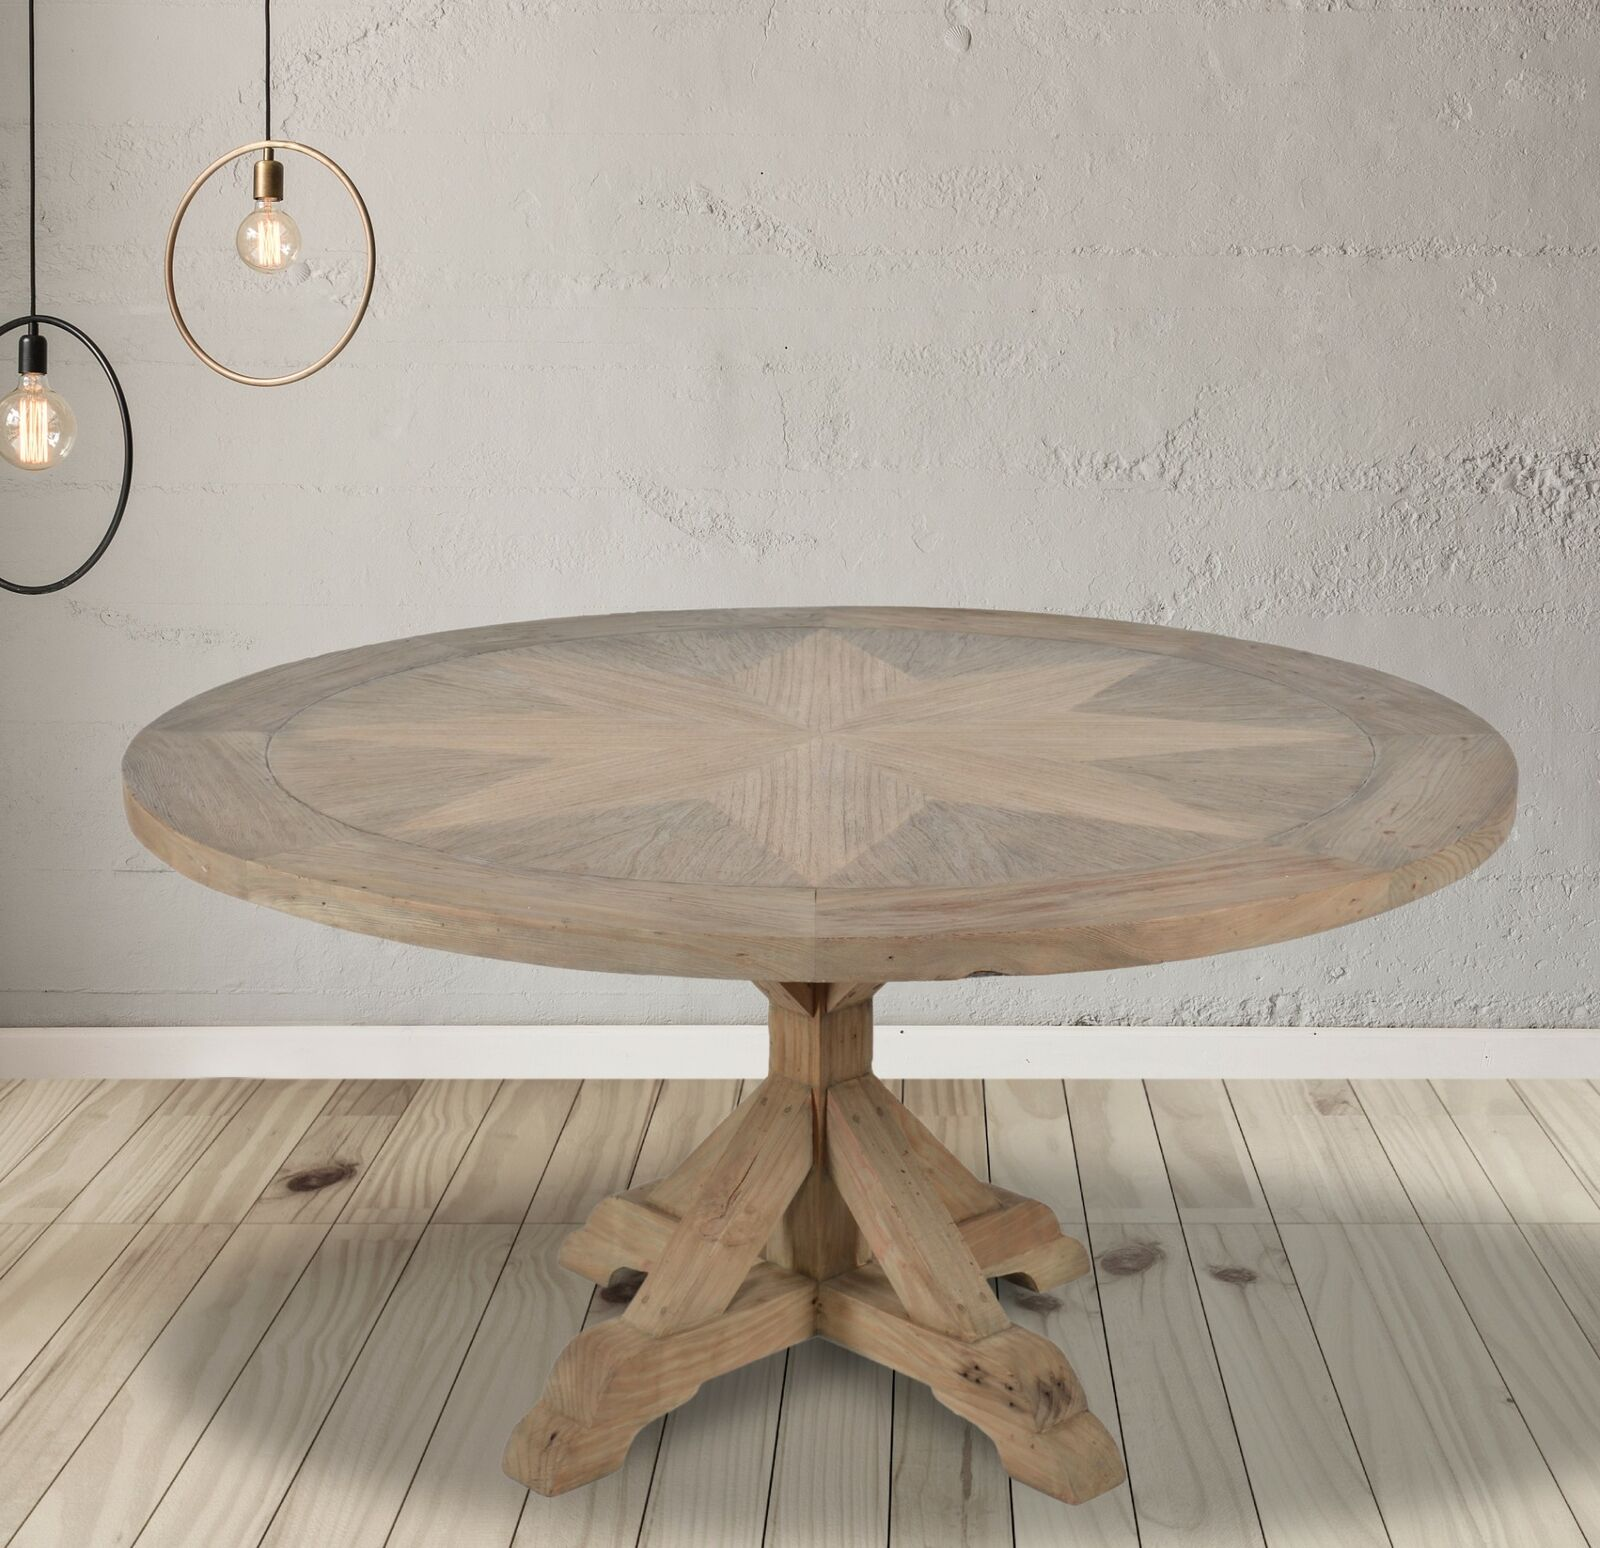 Picture of: Farmhouse Dining Table Round French Country Pedestal Rustic Kitchen Nook White For Sale Online Ebay